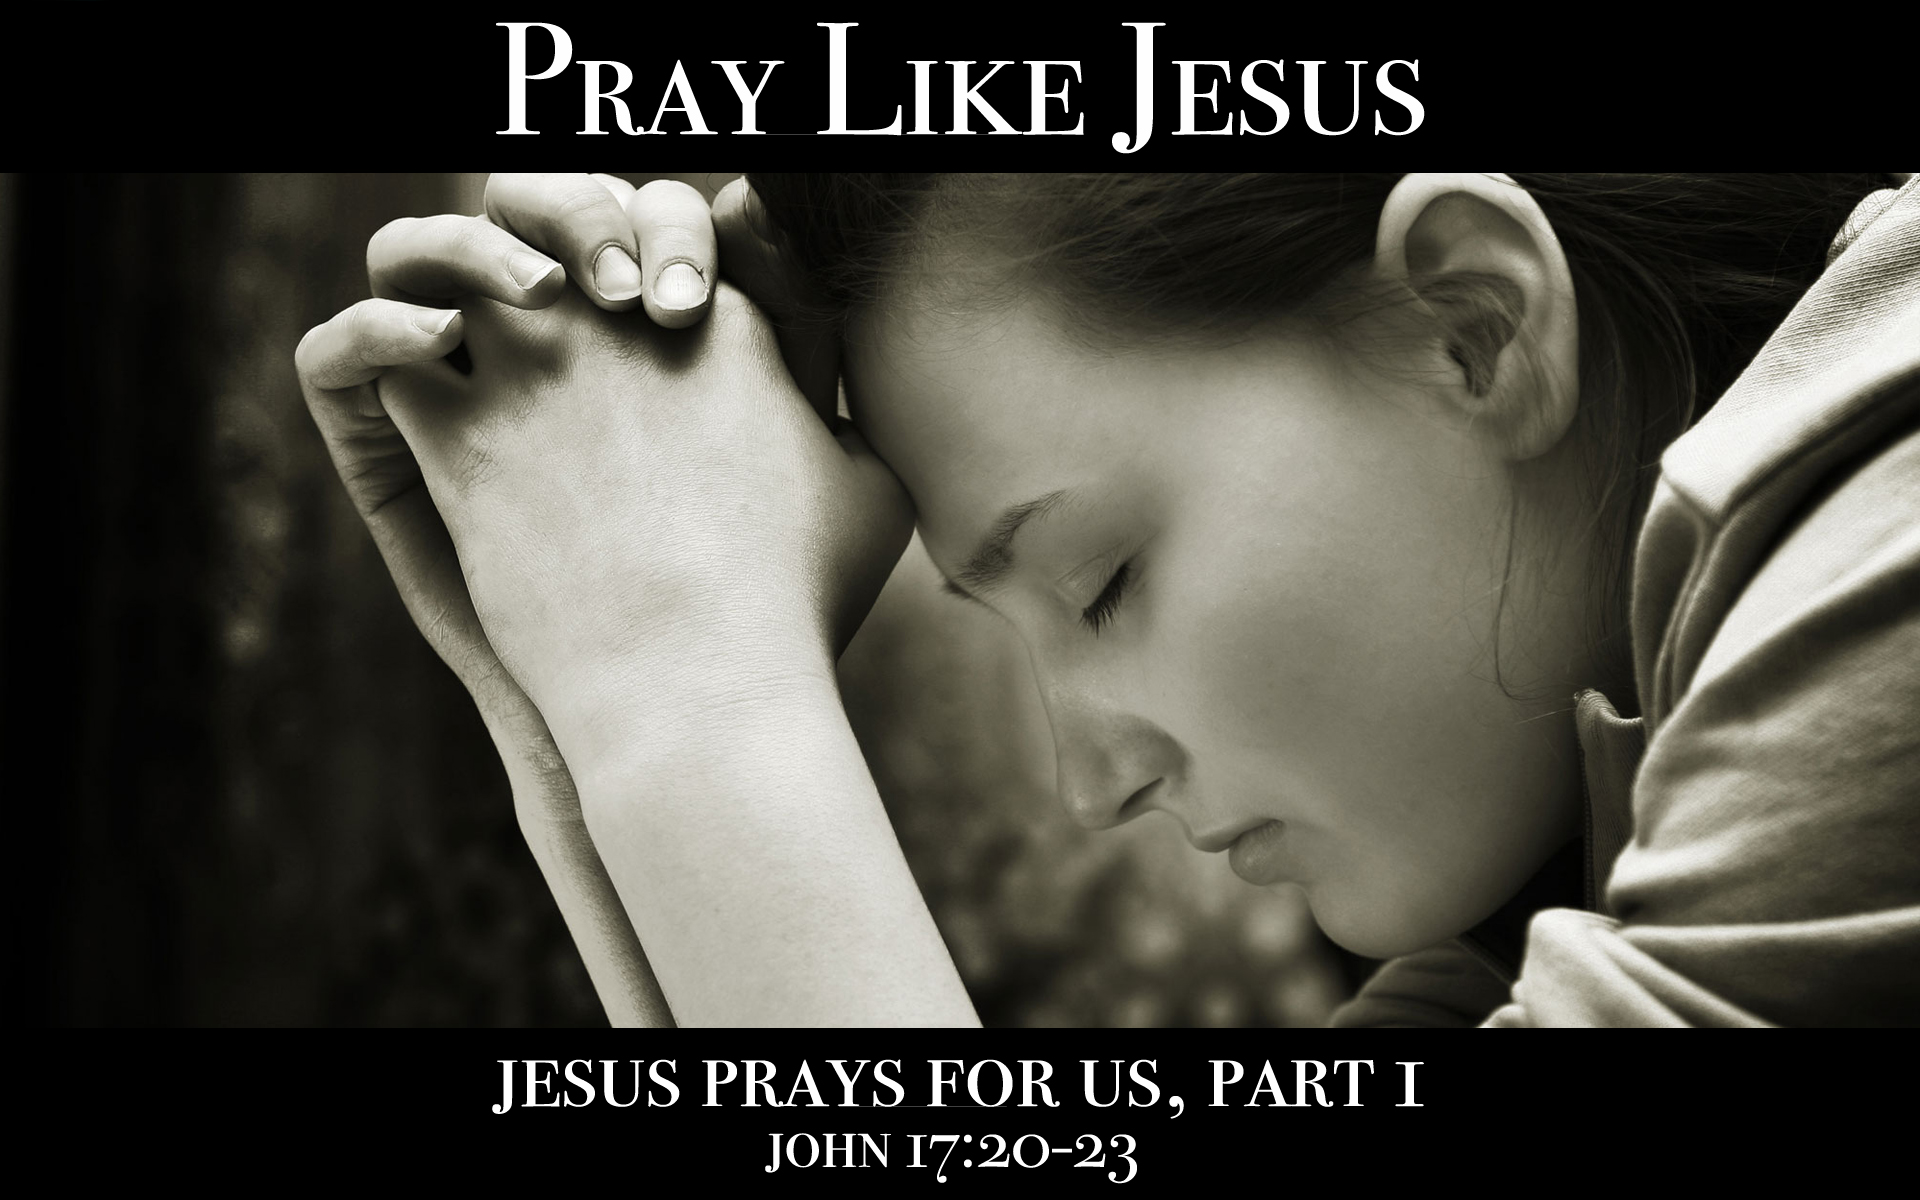 Jesus Prays for Us (Part 1)